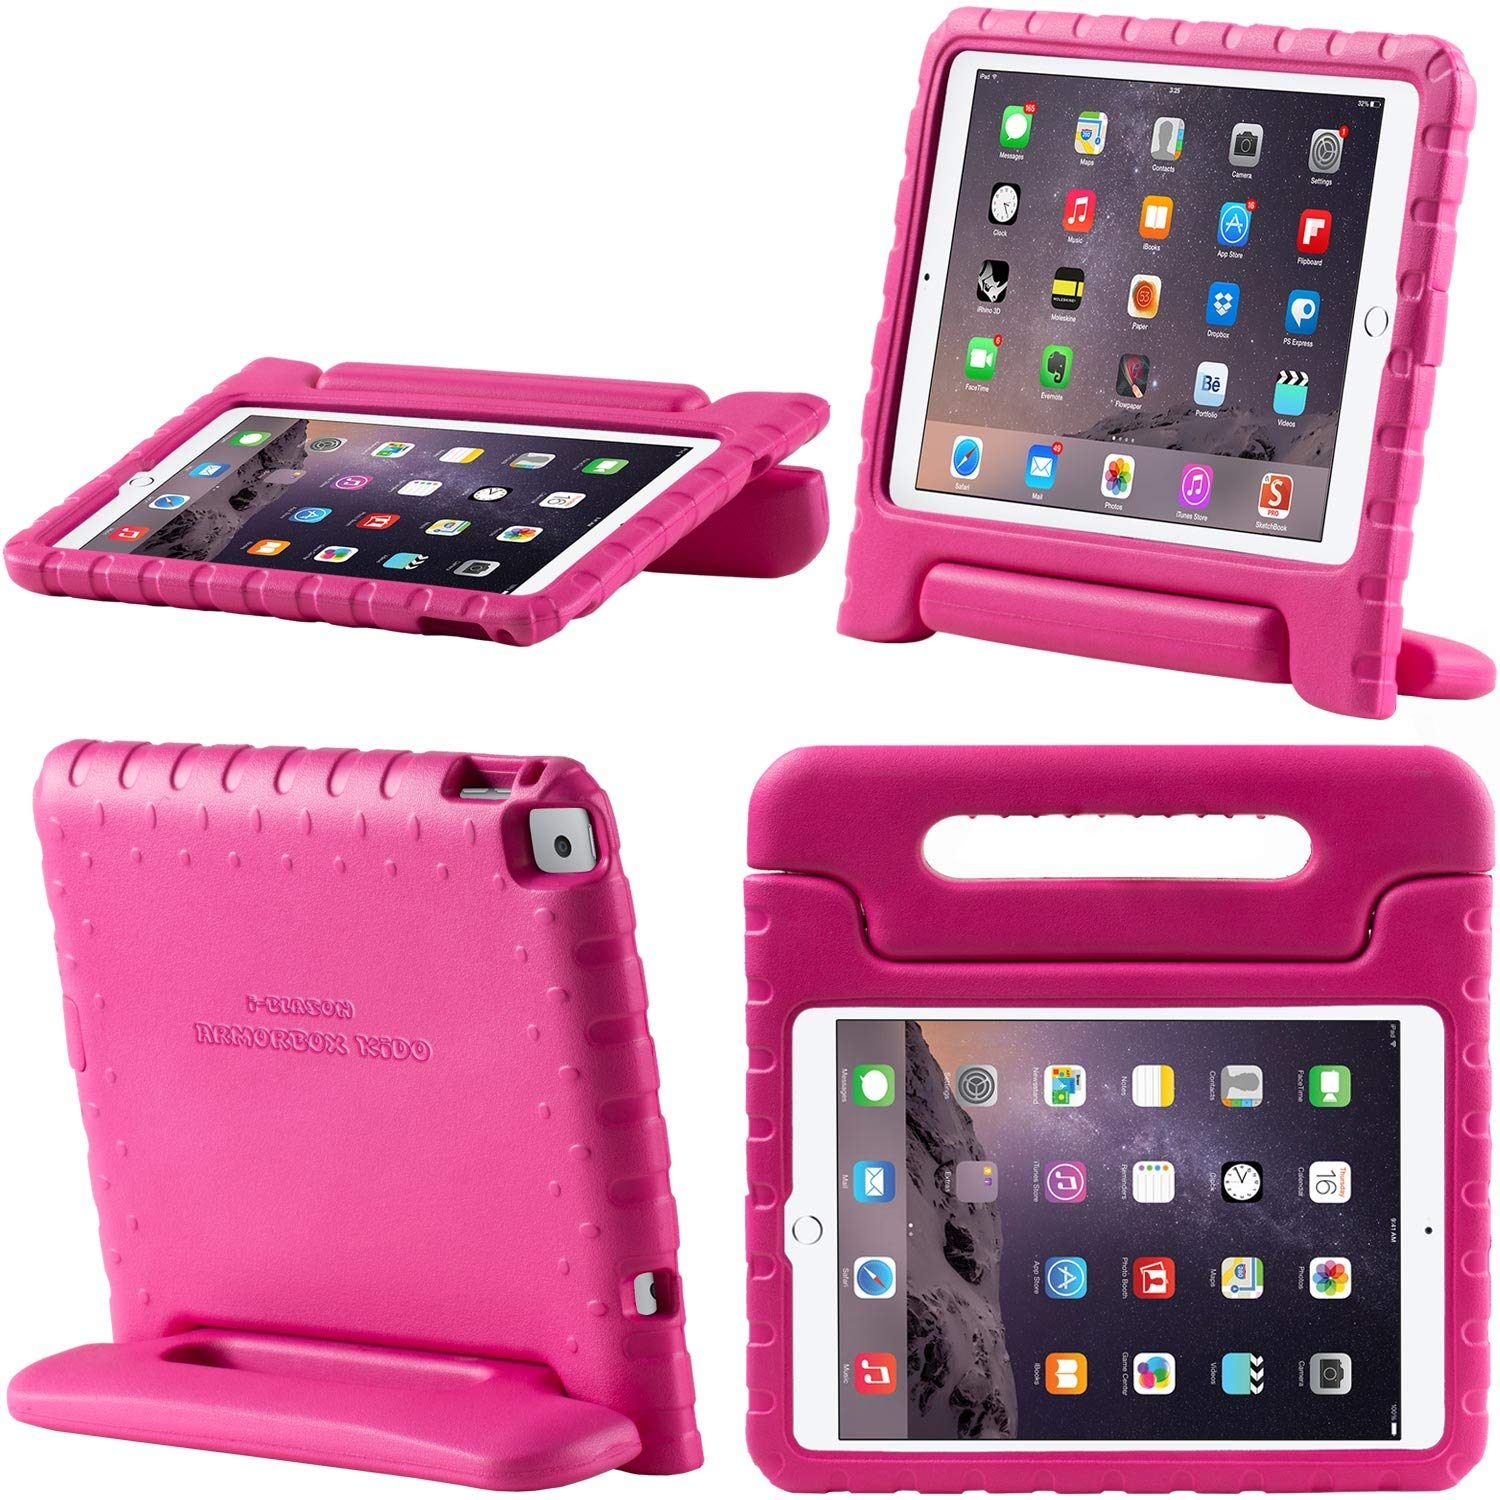 New iPad 9.7 Case 2018 / 2017, i-Blason New Apple iPad 9.7 inch 2017 /2018 Case for Kids [ArmorBox Kido Series] Lightweight Super Protective Convertible Stand Cover (Pink)